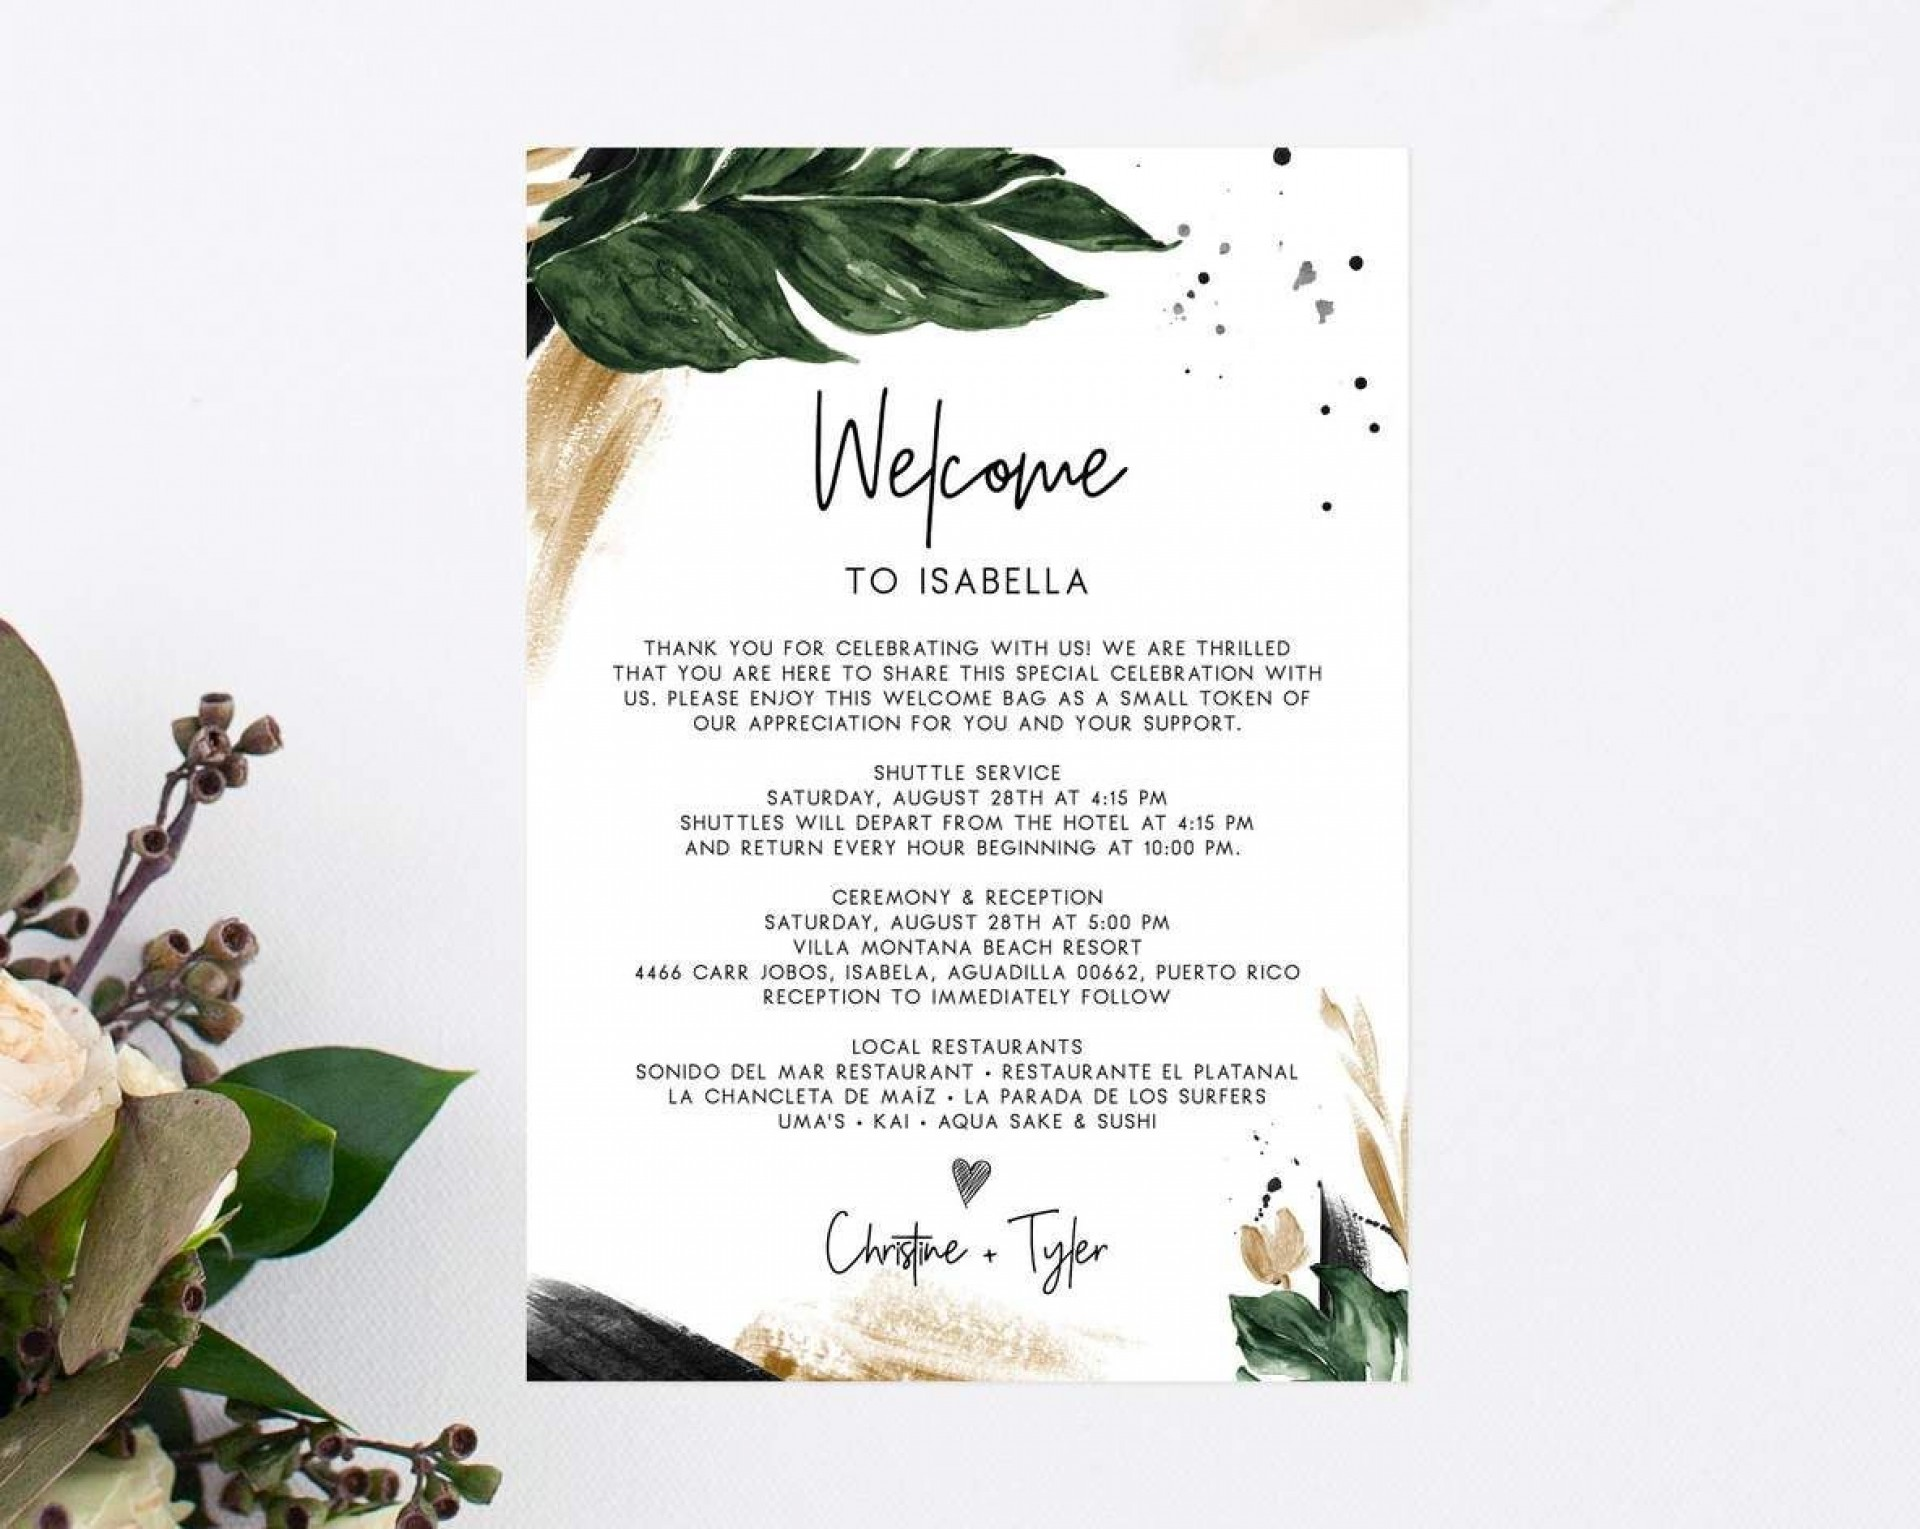 000 Dreaded Wedding Hotel Welcome Letter Template Sample 1920